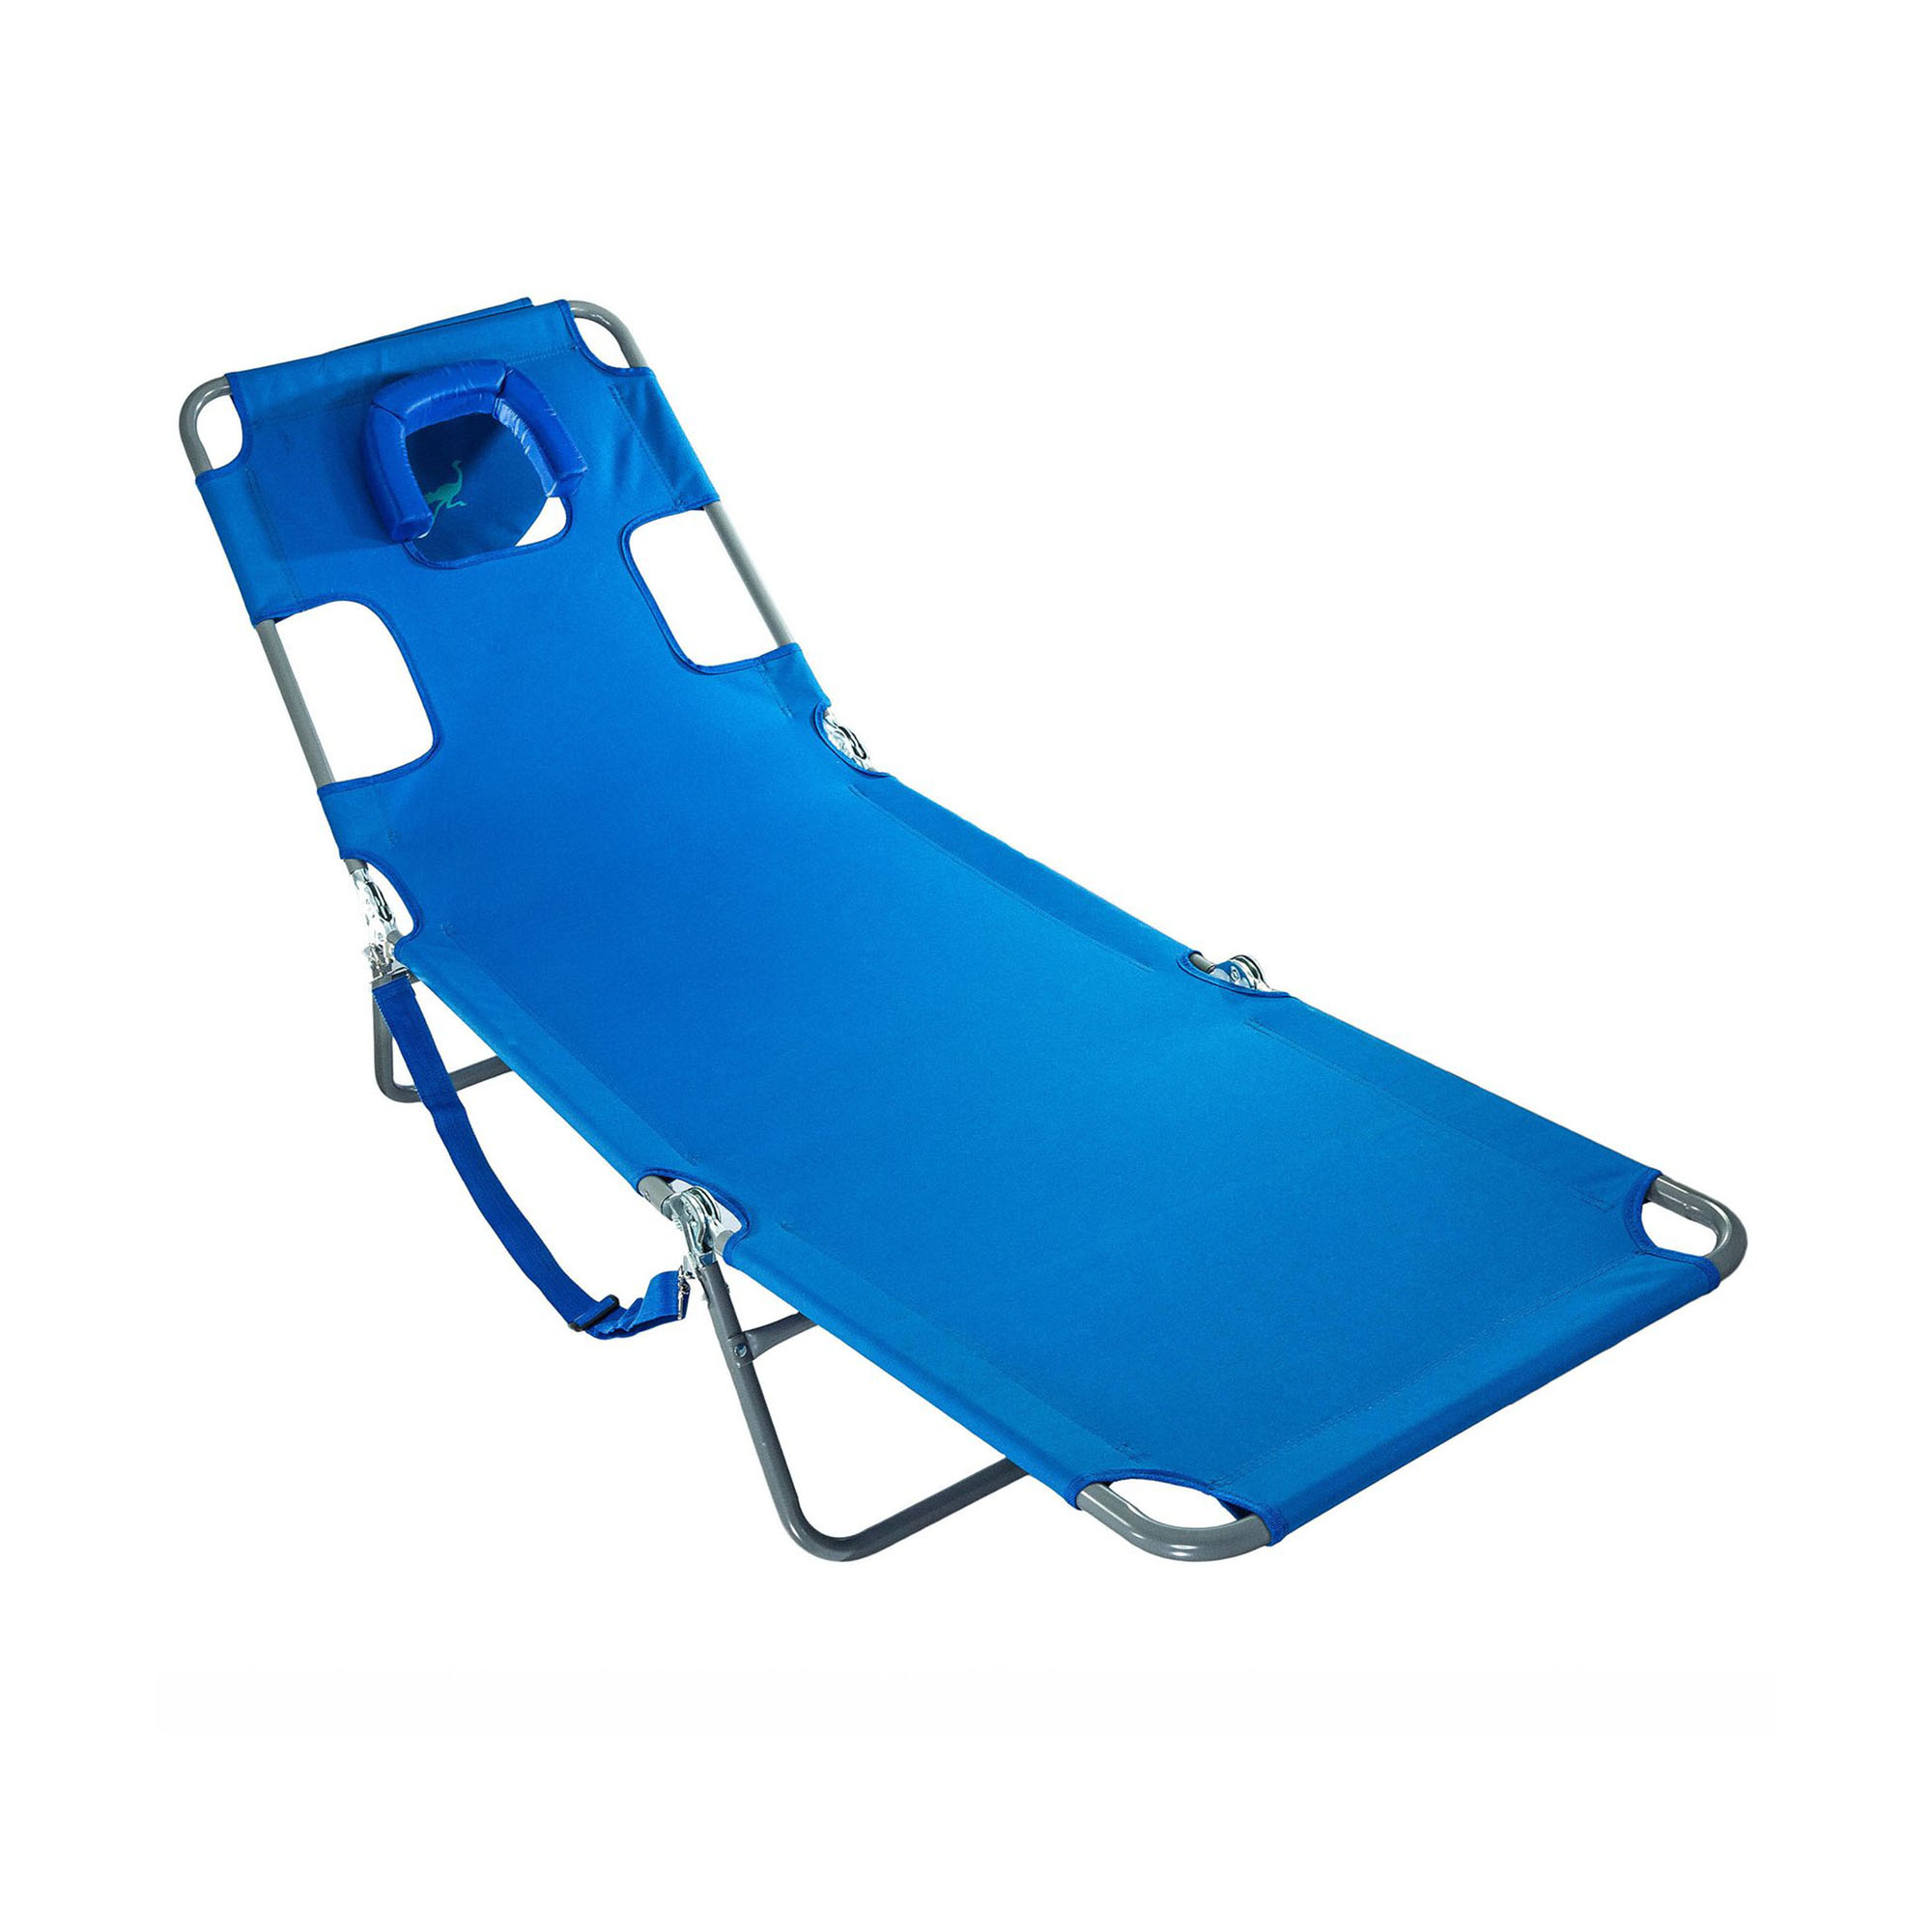 Remarkable Details About Ostrich Chaise Lounge Folding Portable Sunbathing Poolside Beach Chair Blue Gmtry Best Dining Table And Chair Ideas Images Gmtryco